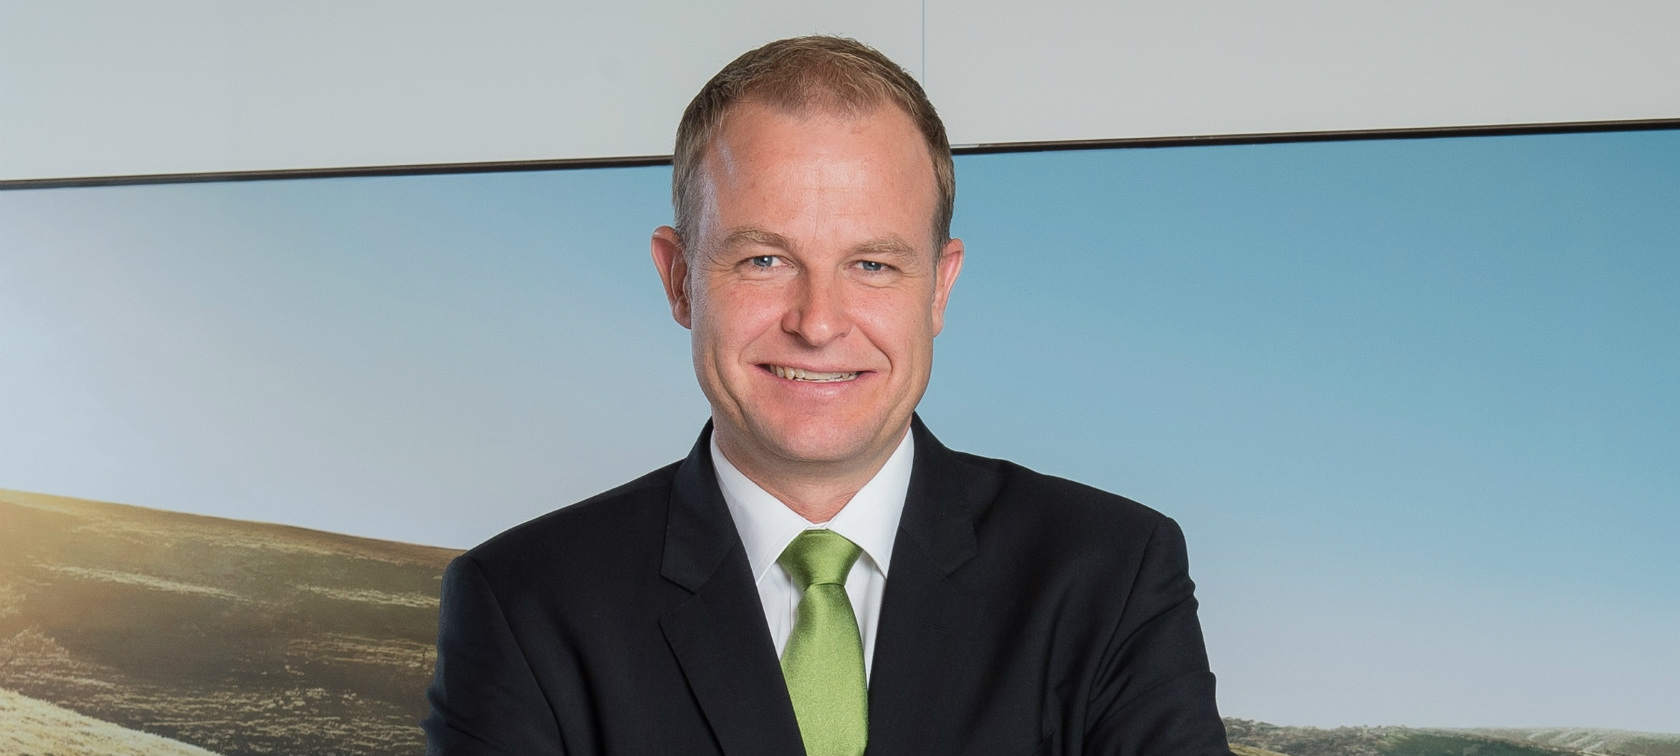 02 03 18 BMW New President Appointment